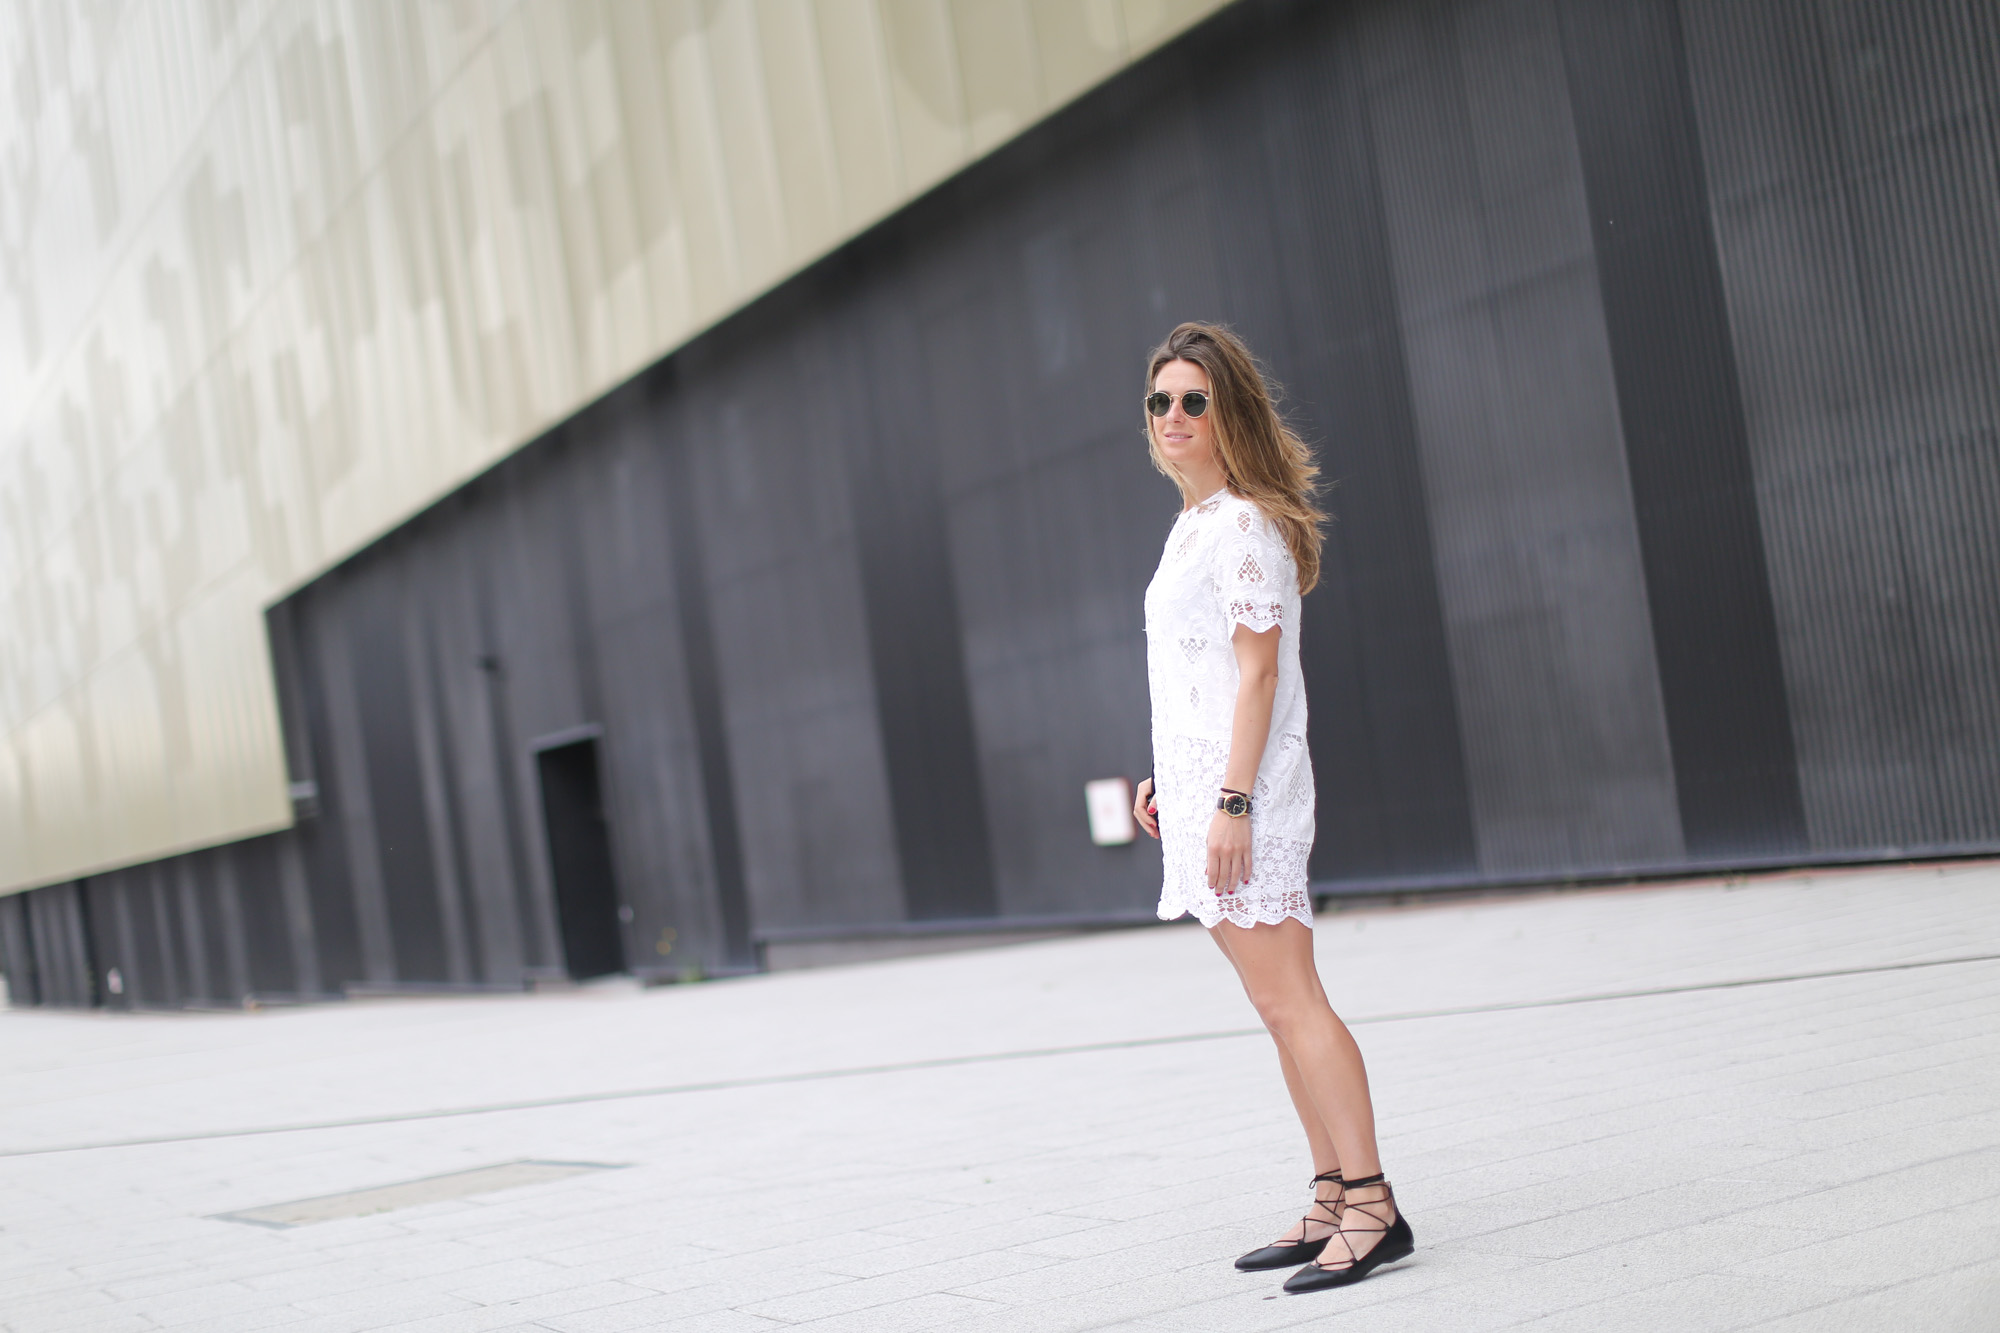 Clochet-streetstyle-zara-chloe-dress-lace-up-flat-shoes-3